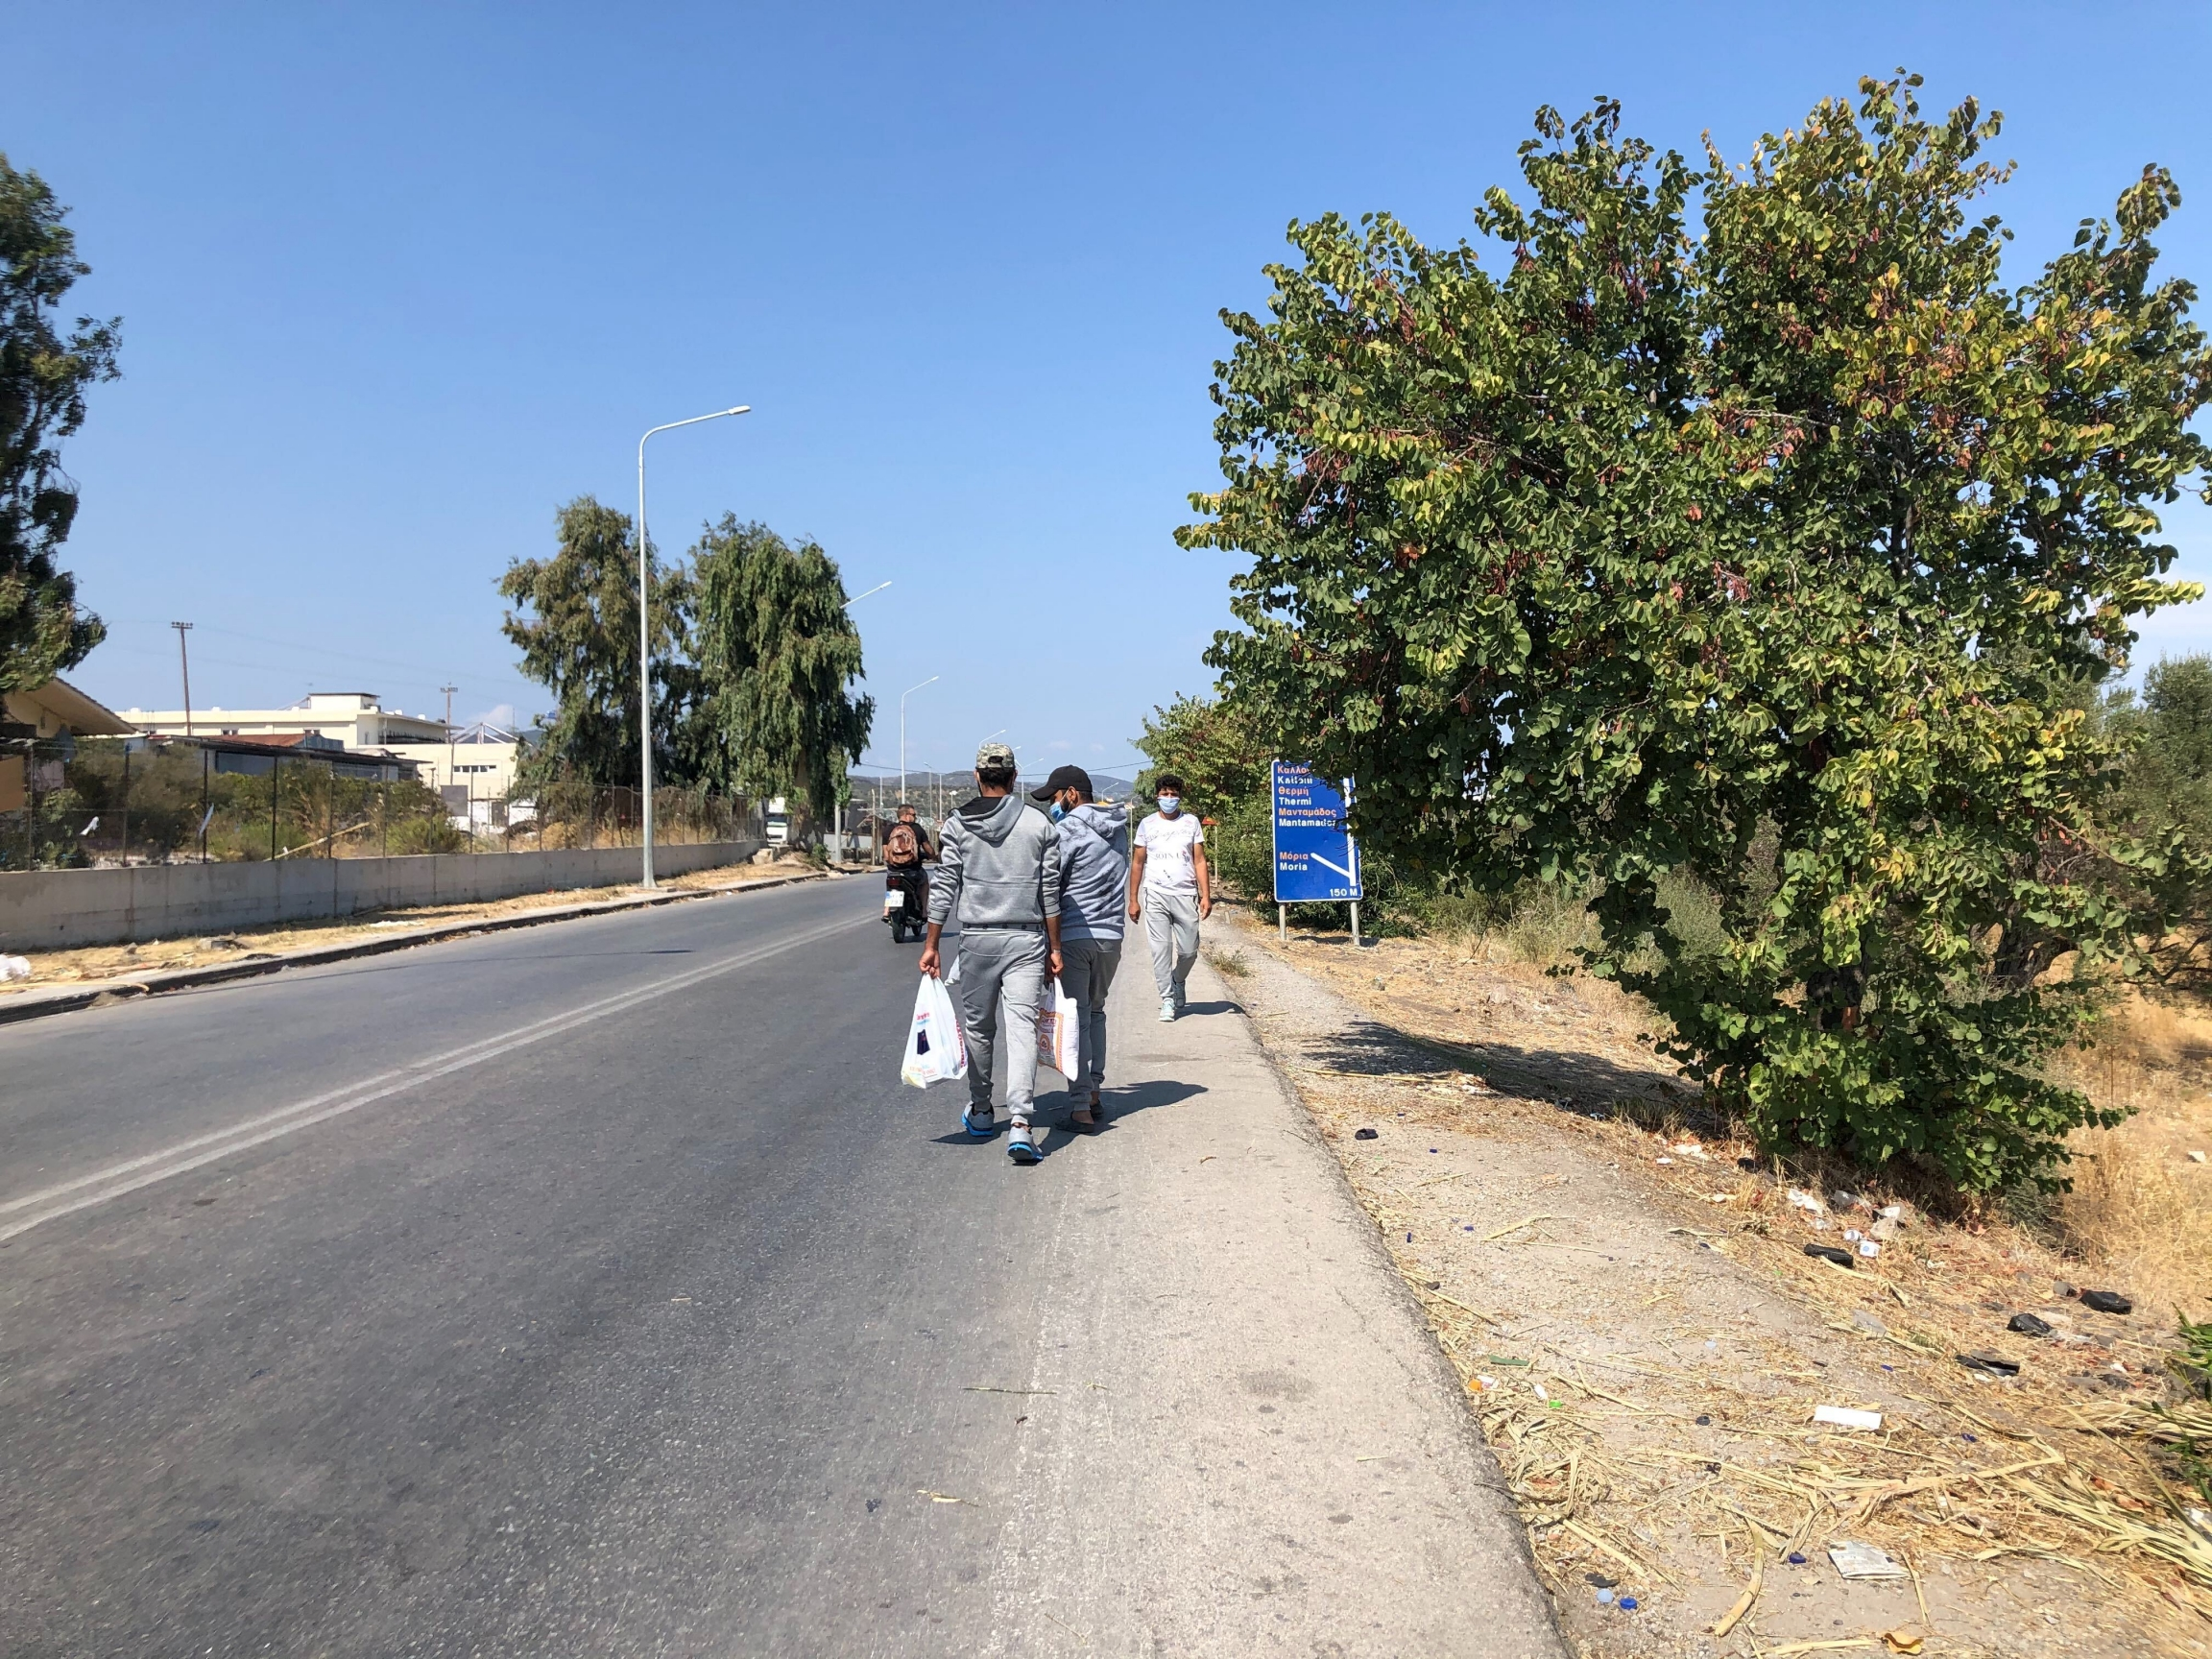 Two Syrian asylum-seekers return from a shopping trip to the port city of Mytilene, where they picked up rice, tomato sauce and other food. They say the food being distributed at the camp is not enough.